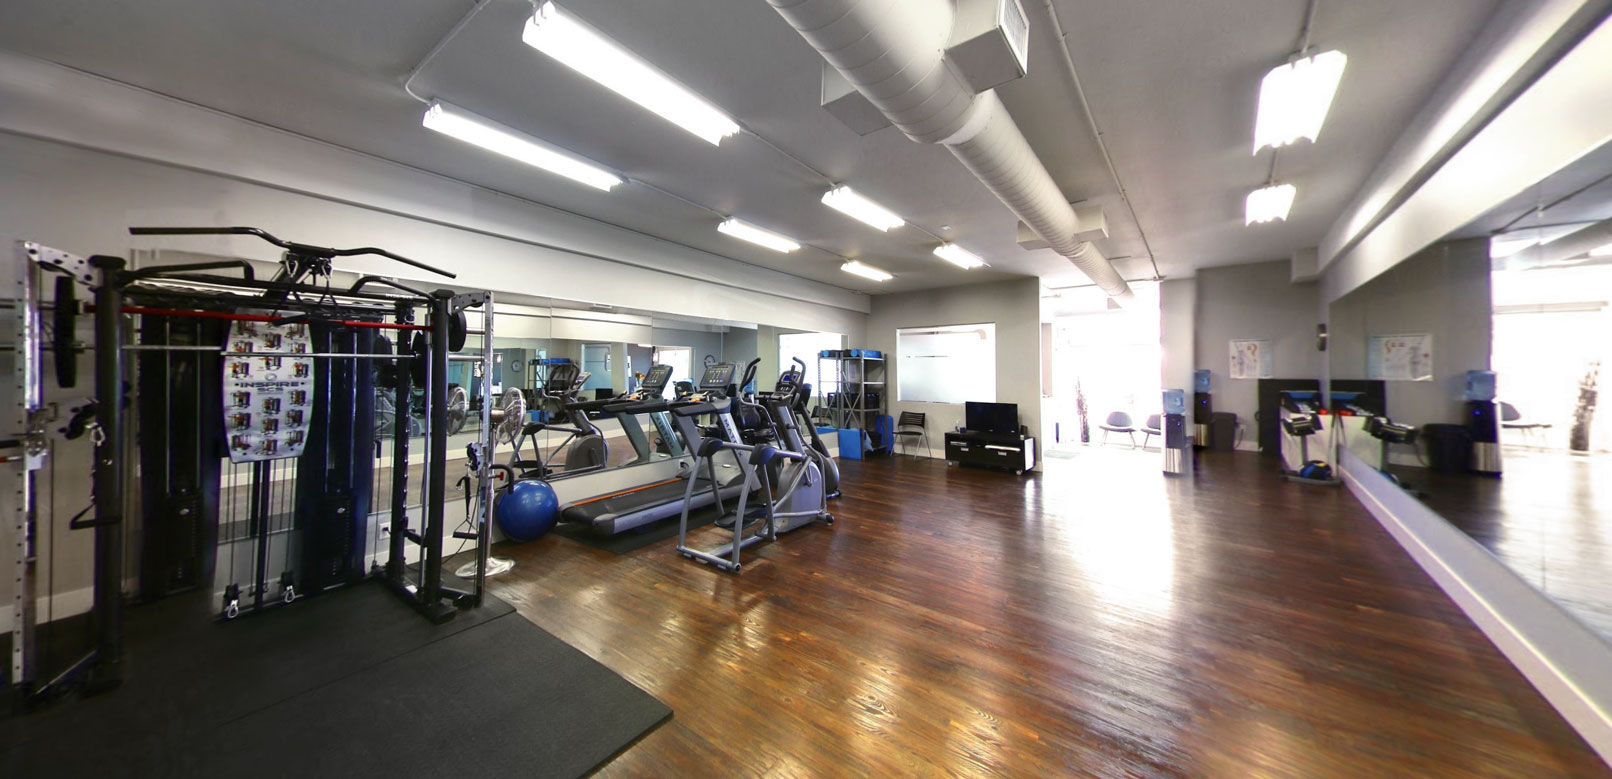 North 49 Physical Therapy Physiotherapy Studio and Gym